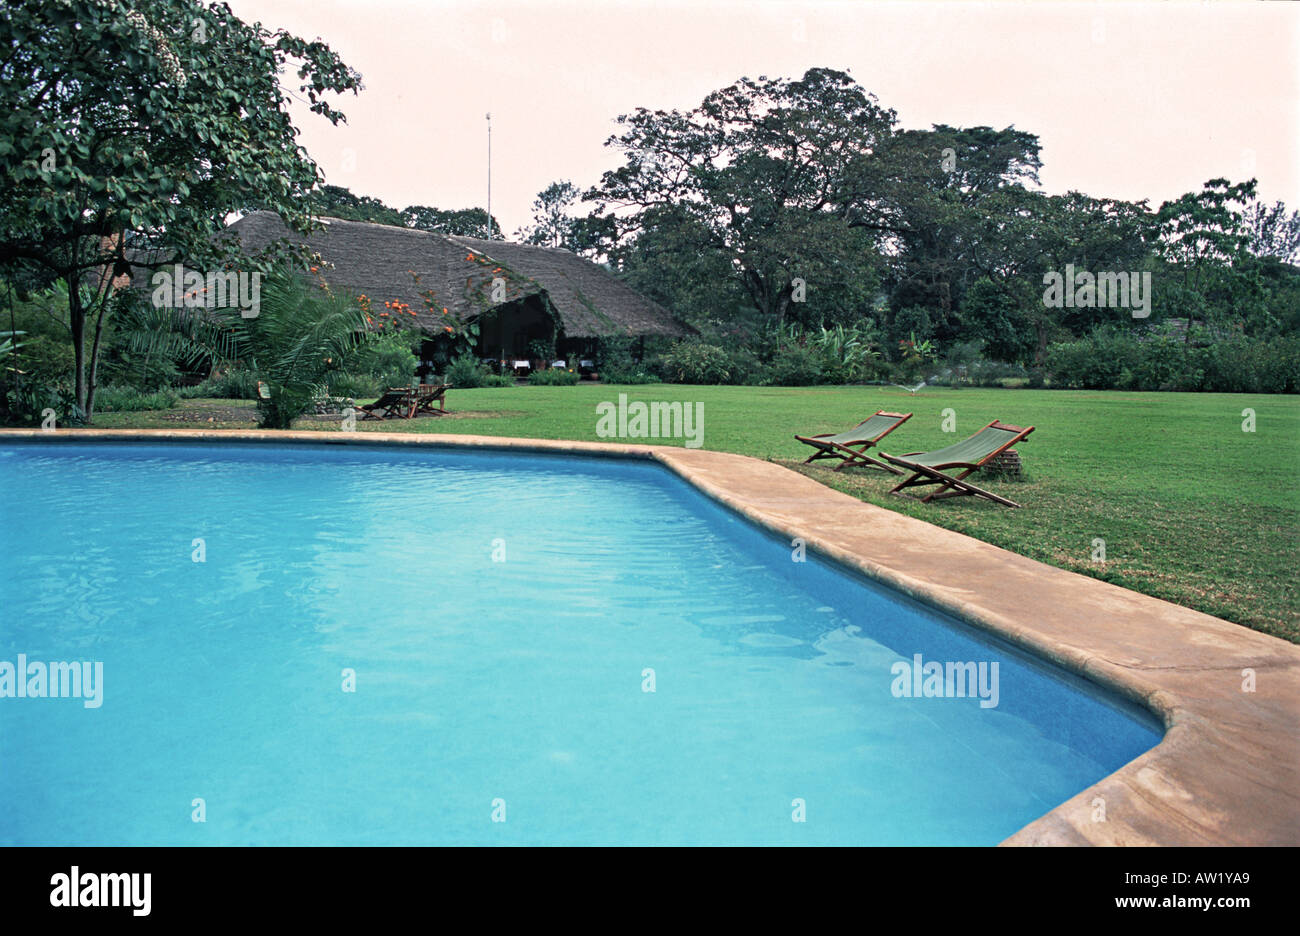 Empty sun loungers beside the pool at the Moivaro Lodge and Coffee Plantation Arusha Tanzania - Stock Image